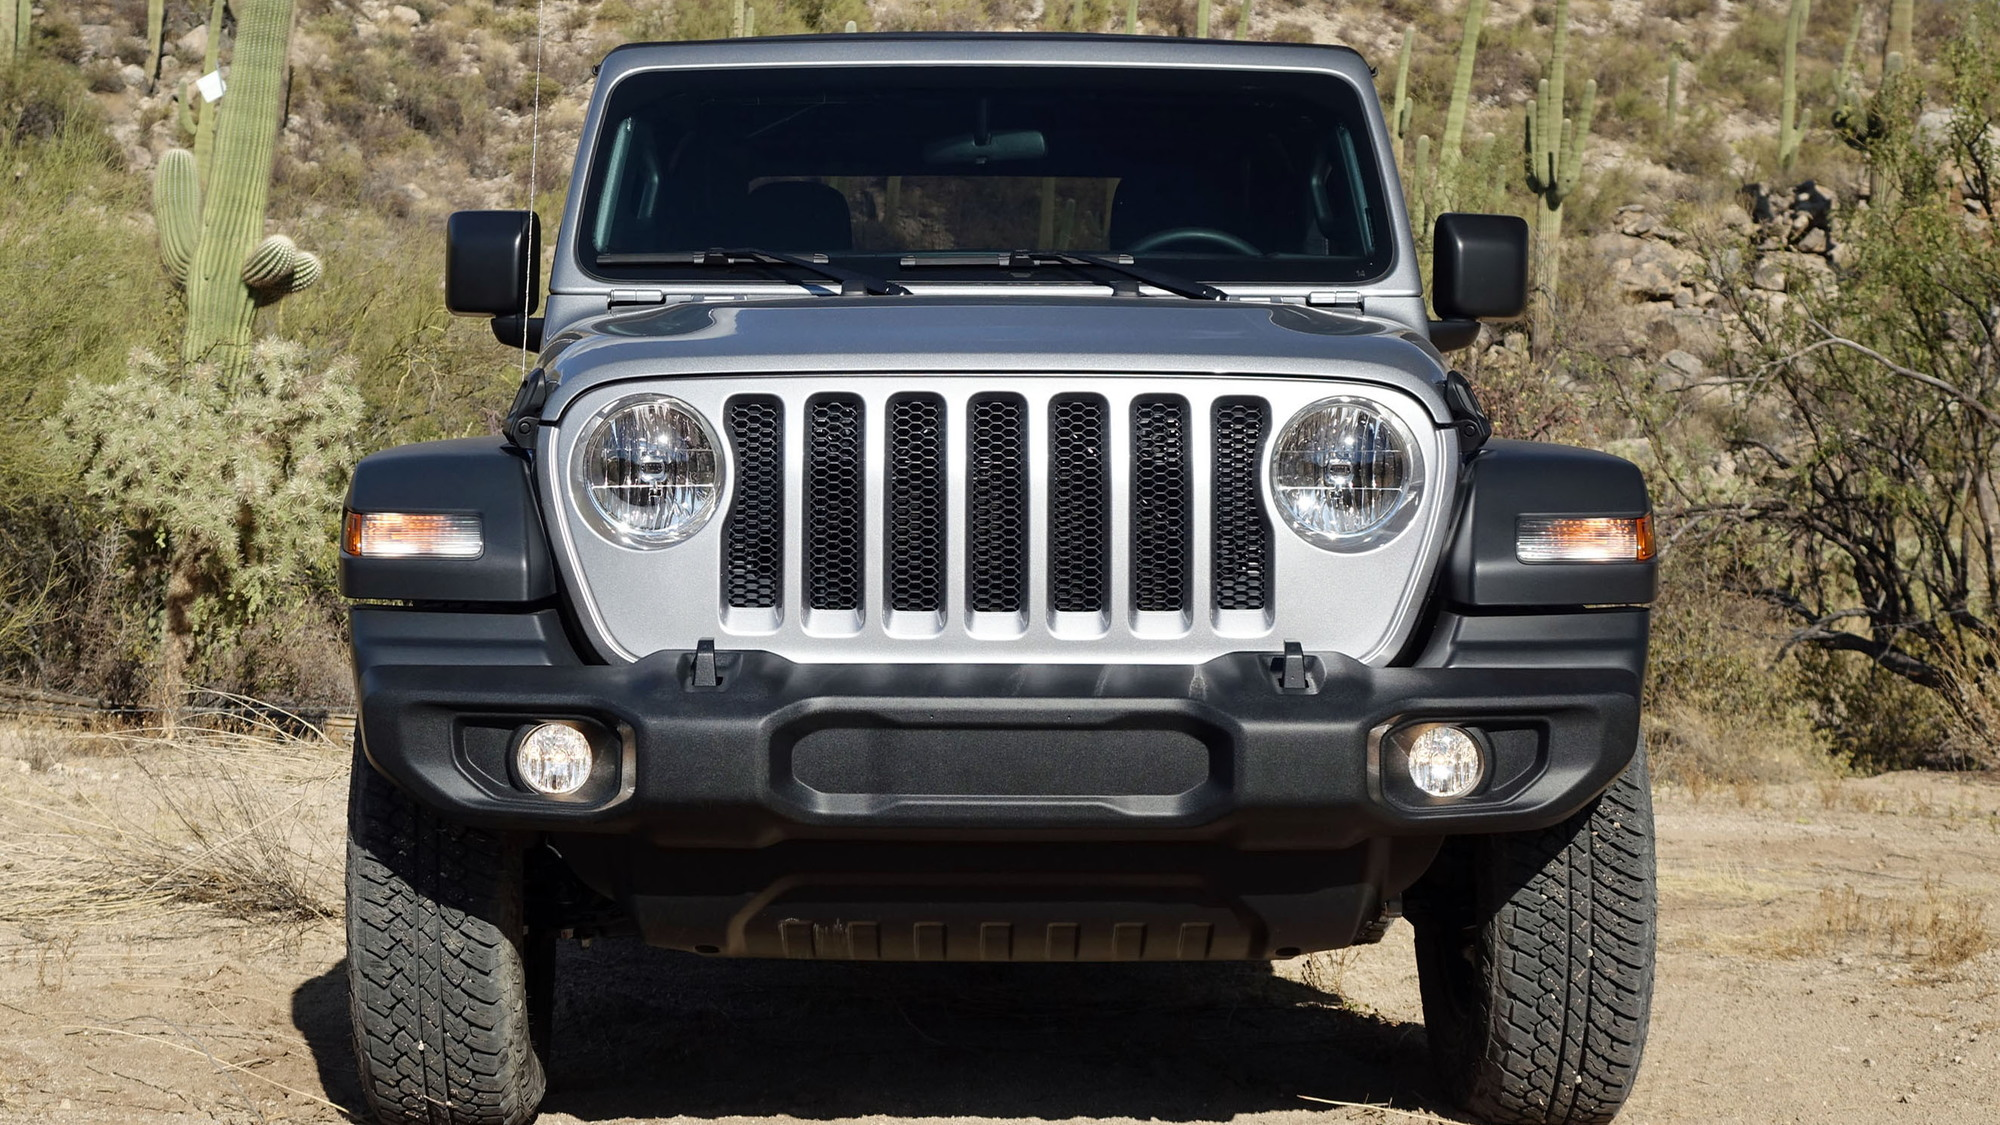 2018 Jeep Wrangler first drive review: expectations defied